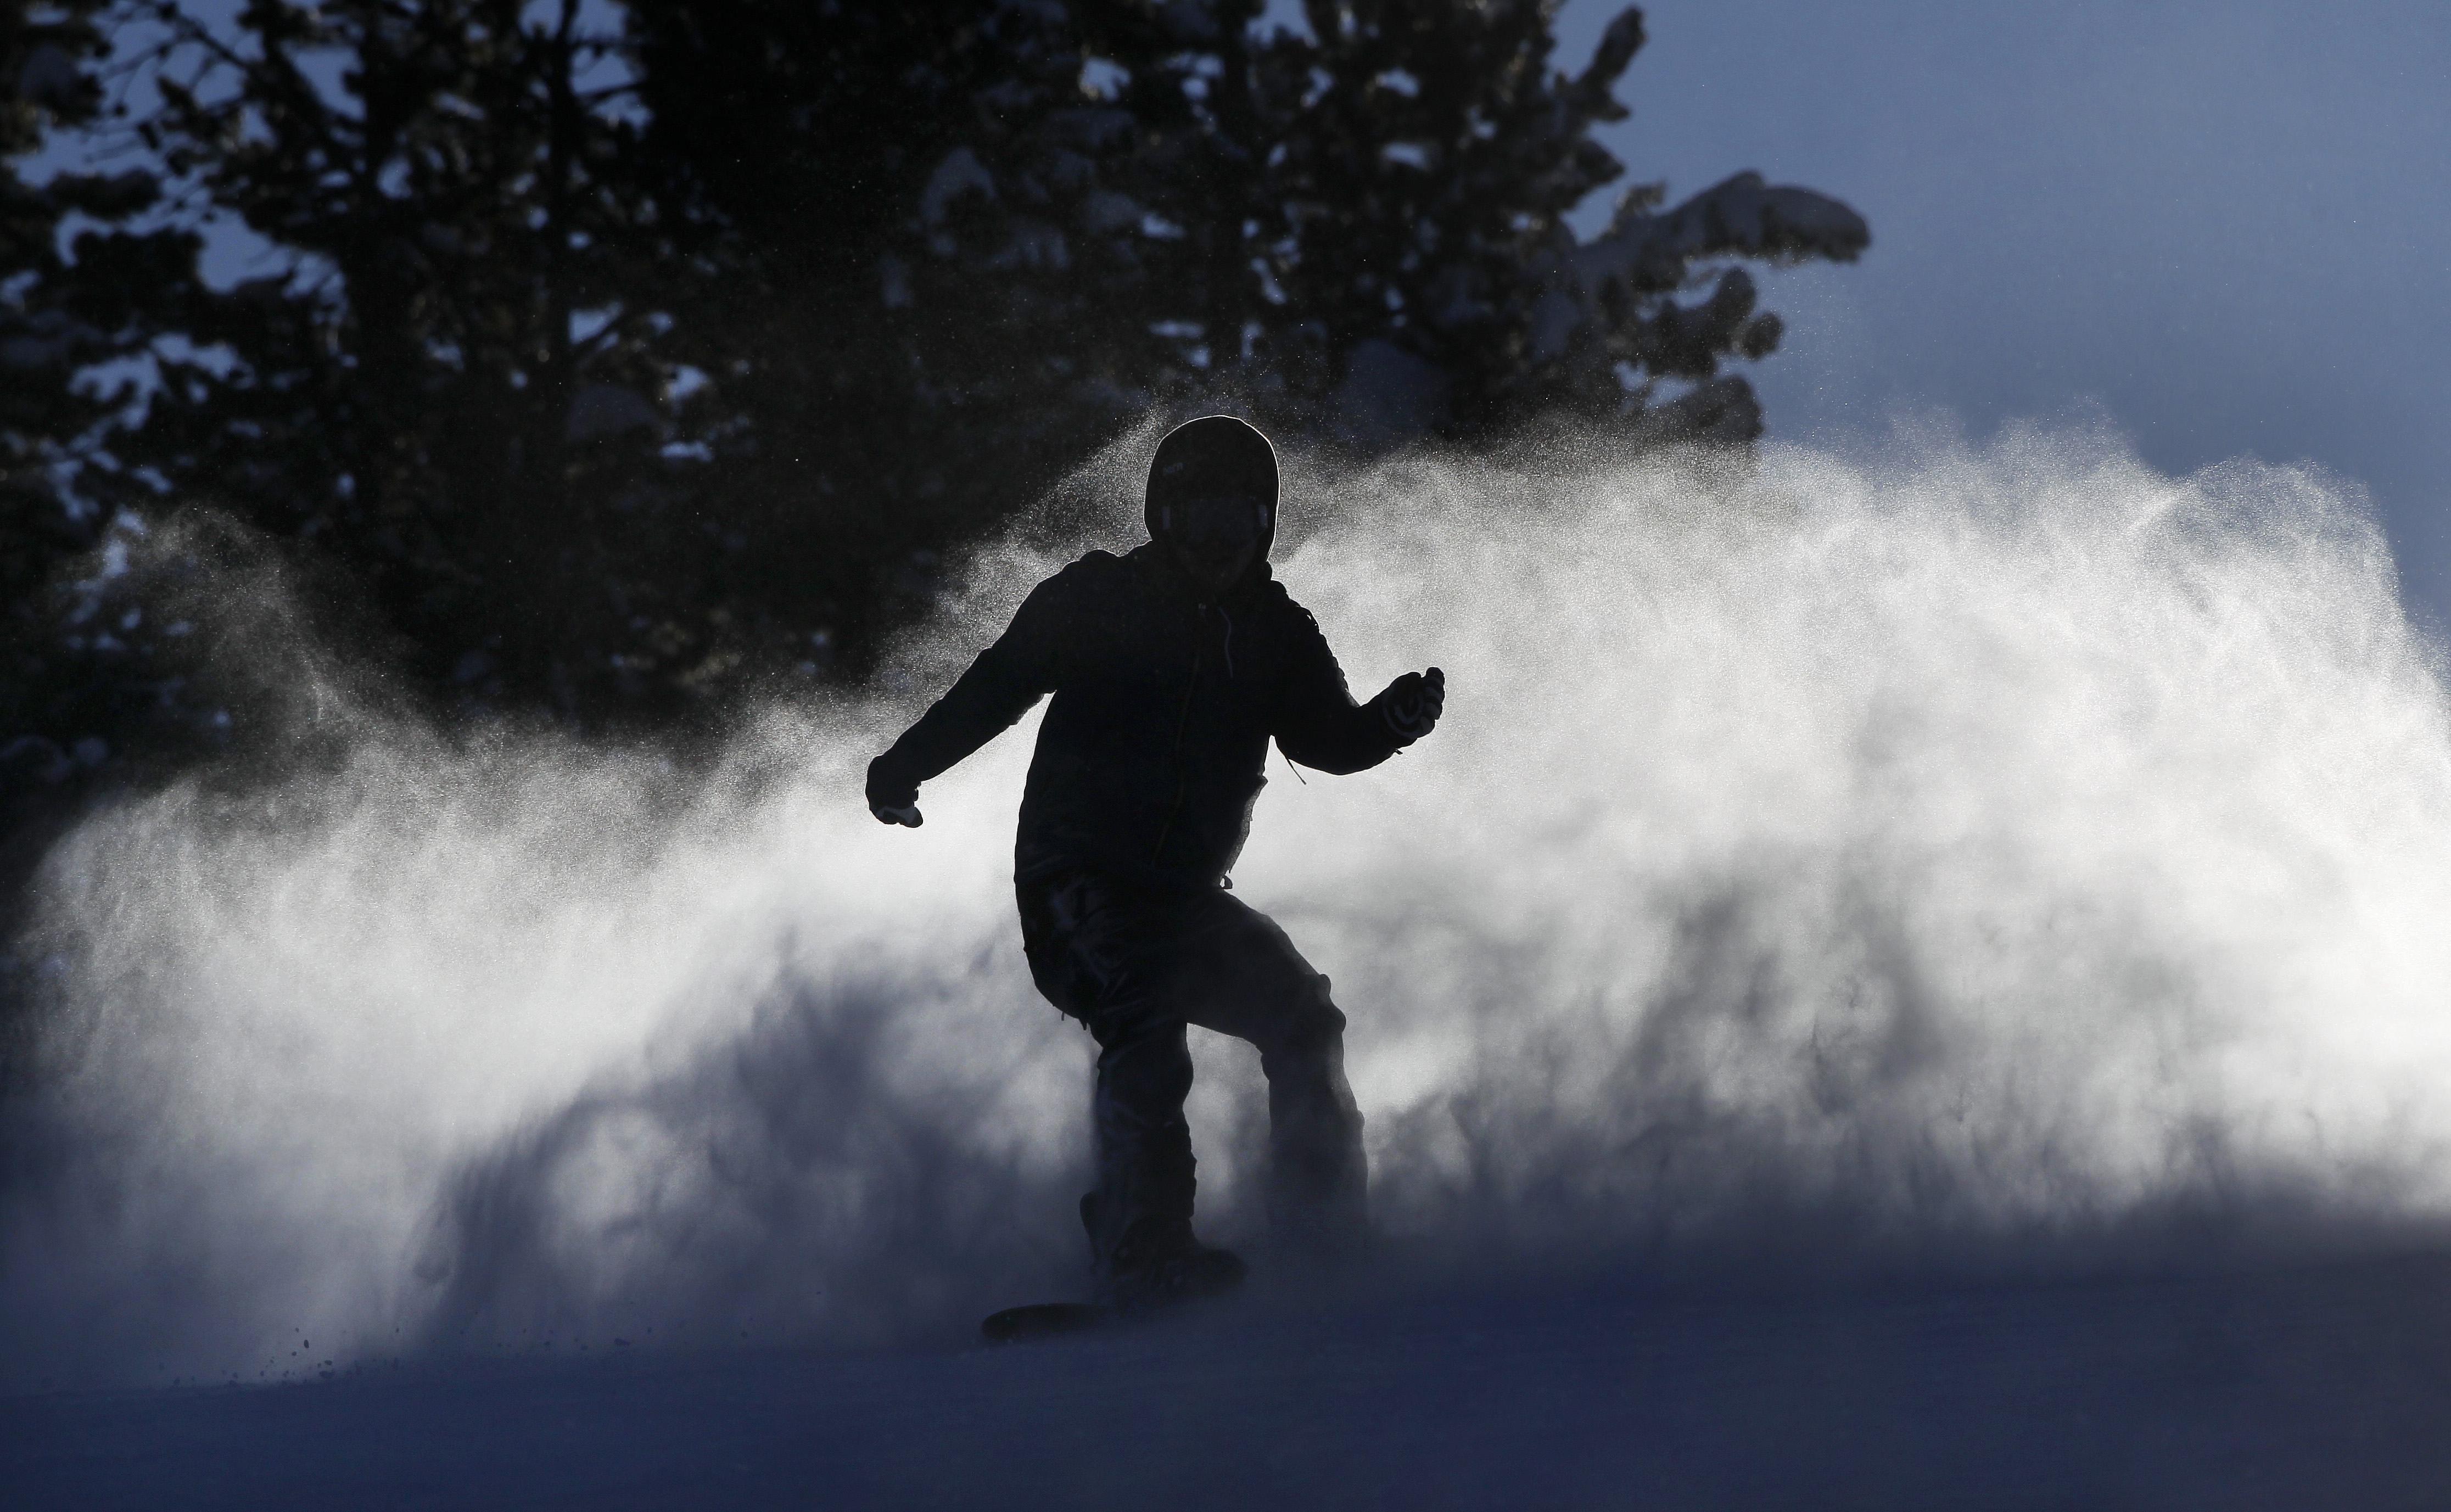 Photo: Snowboarder at Winter Park (AP Photo)